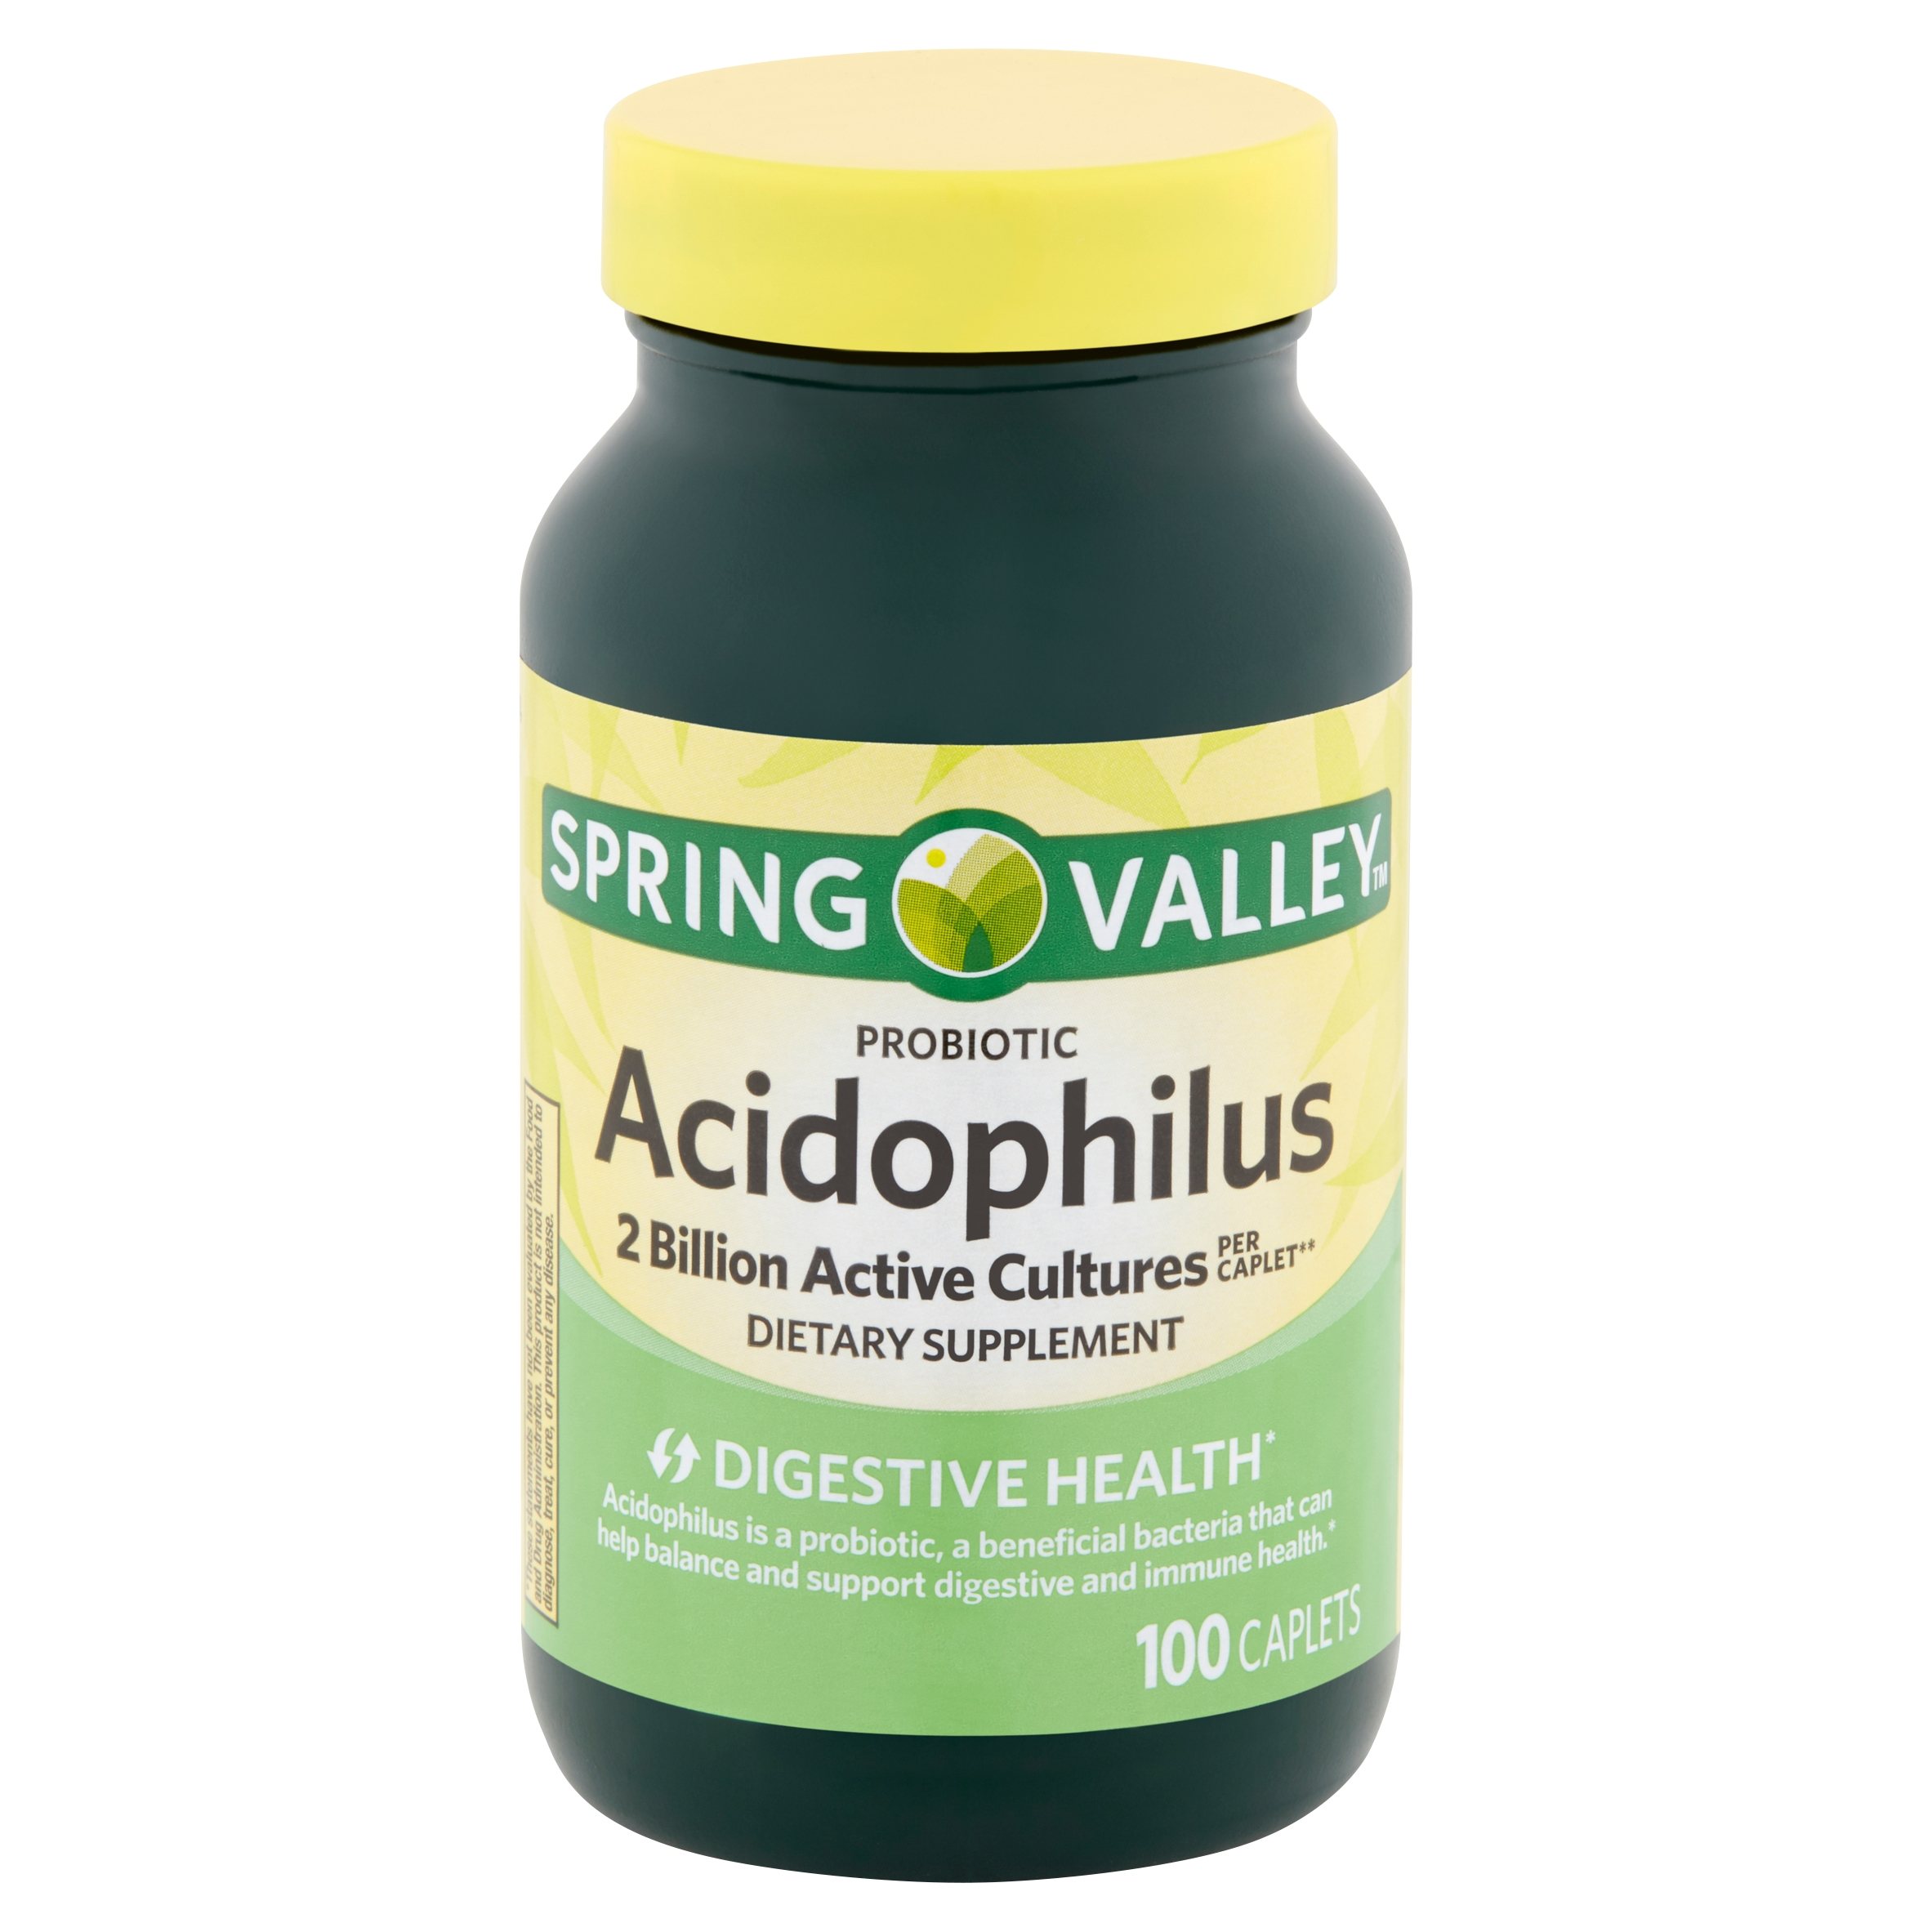 Spring Valley Probiotic Acidophilus Caplets, 100 count